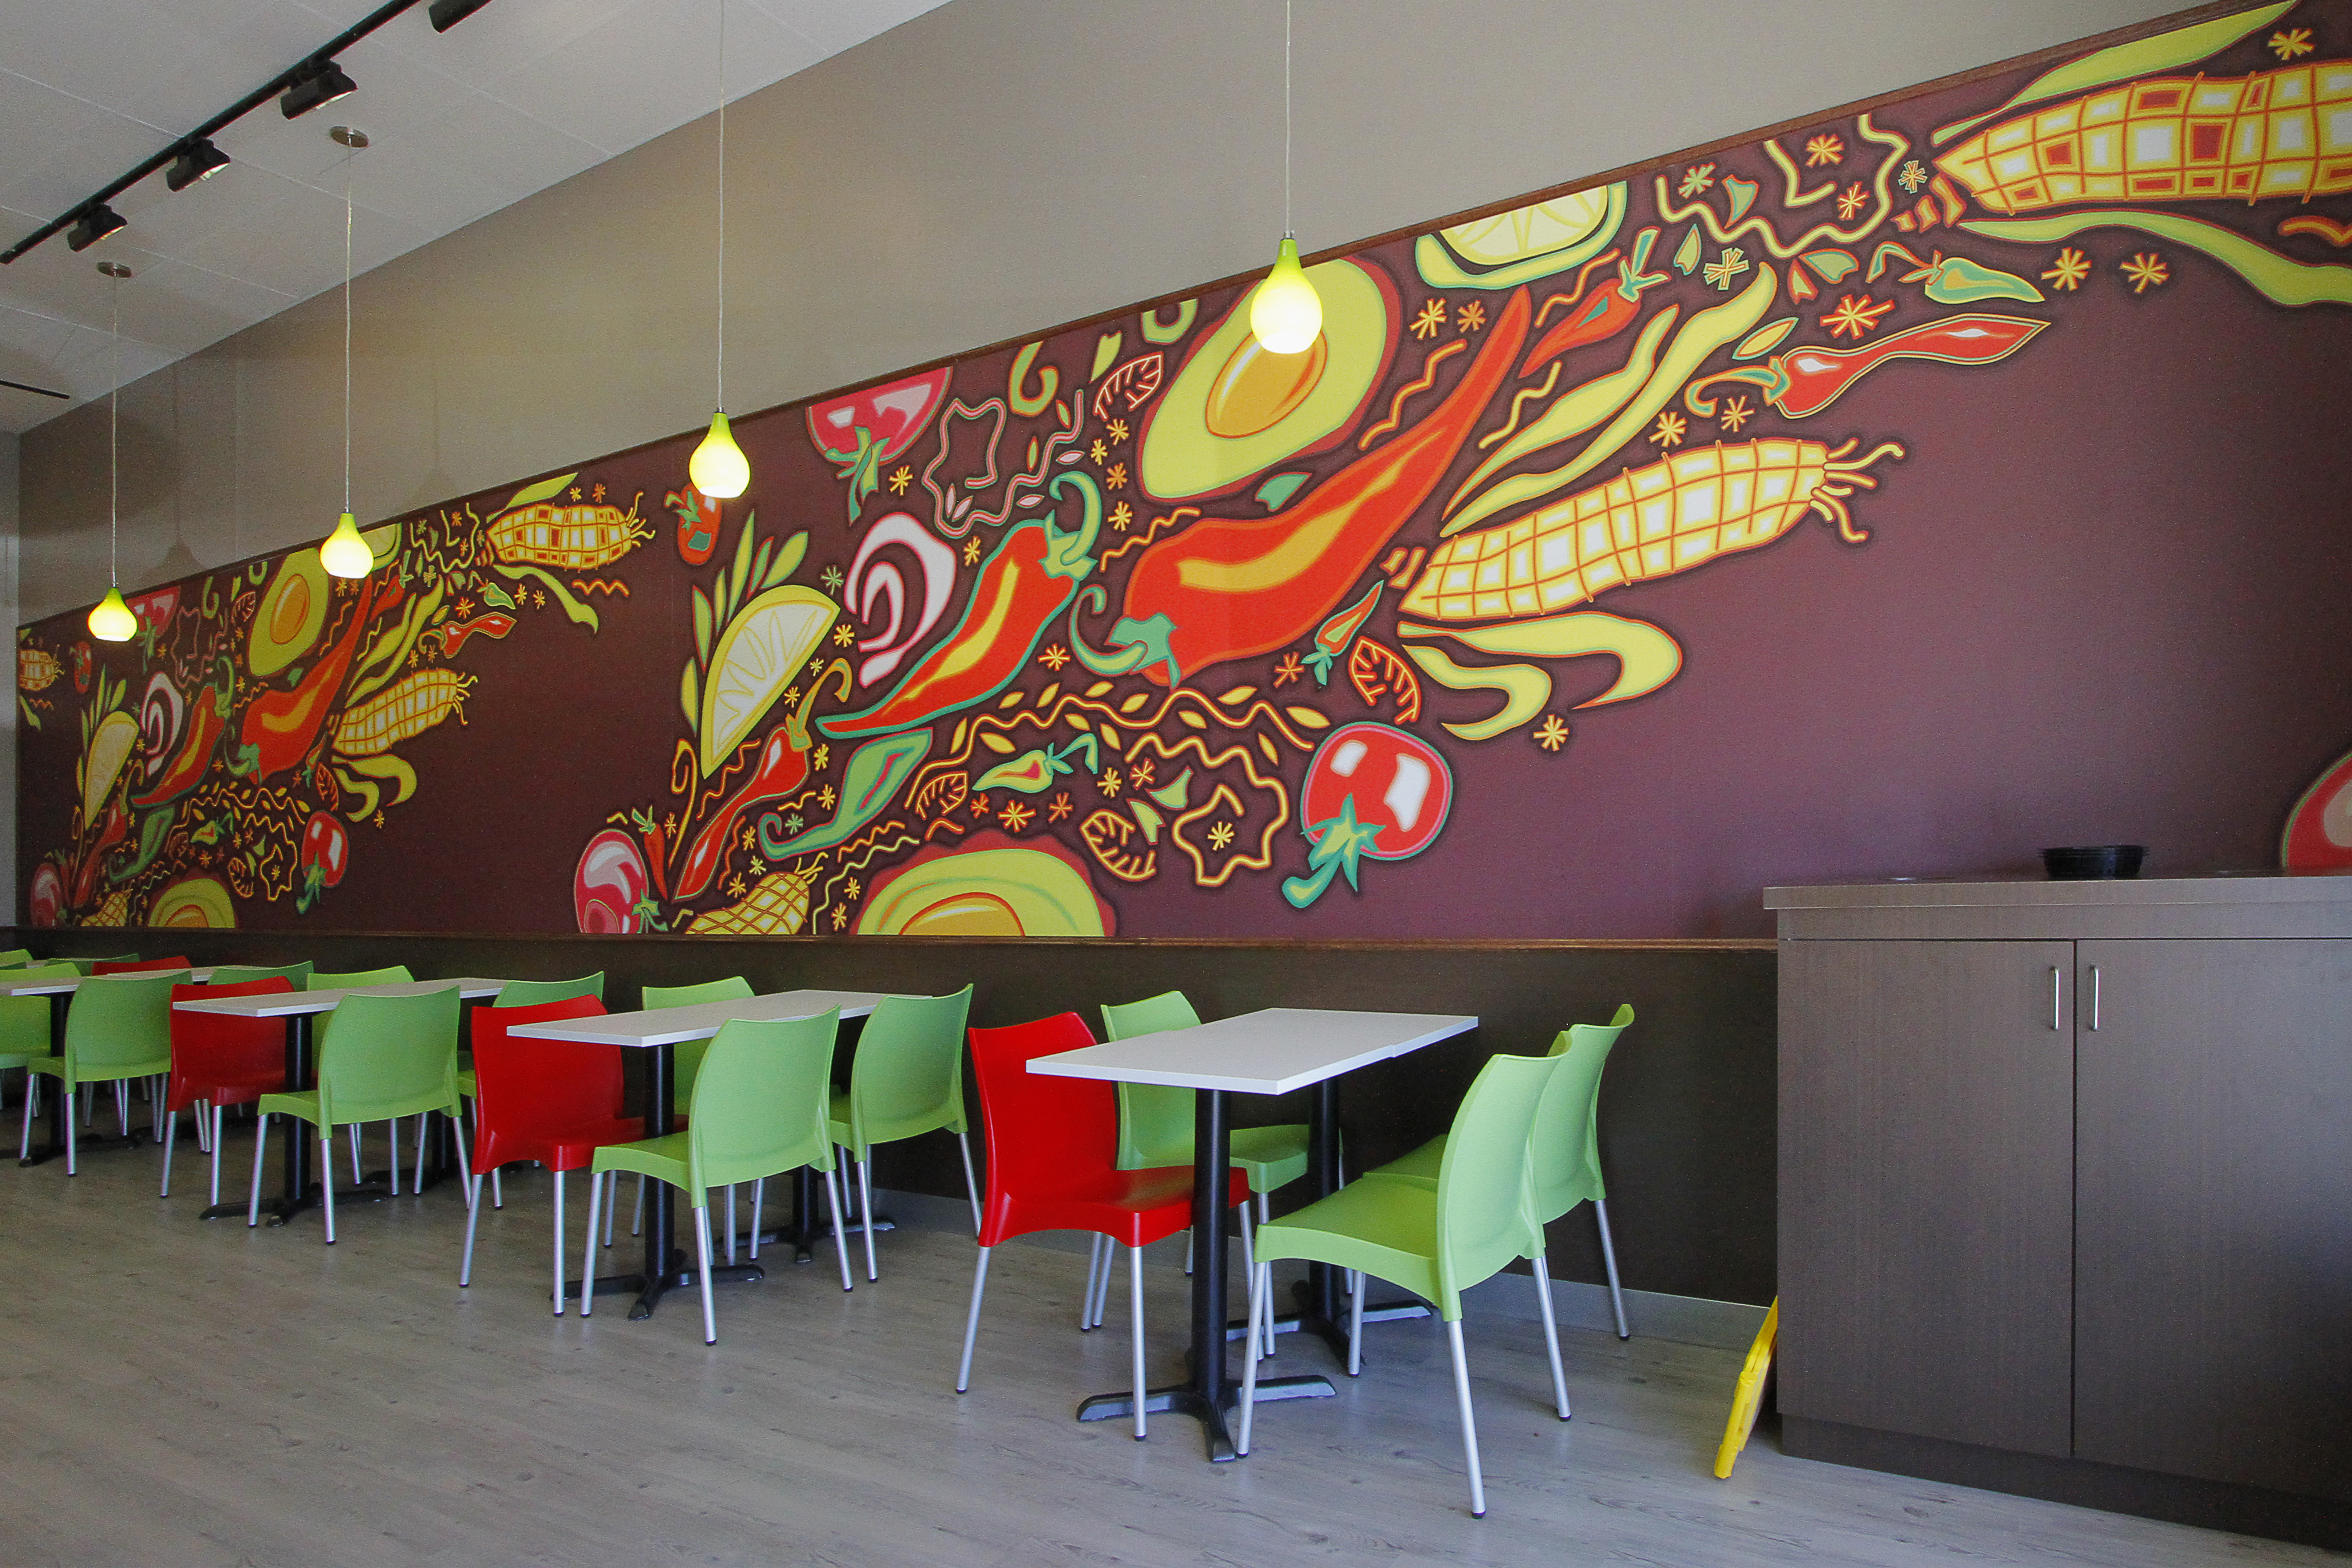 Quesada Mexican Grill Art Mural